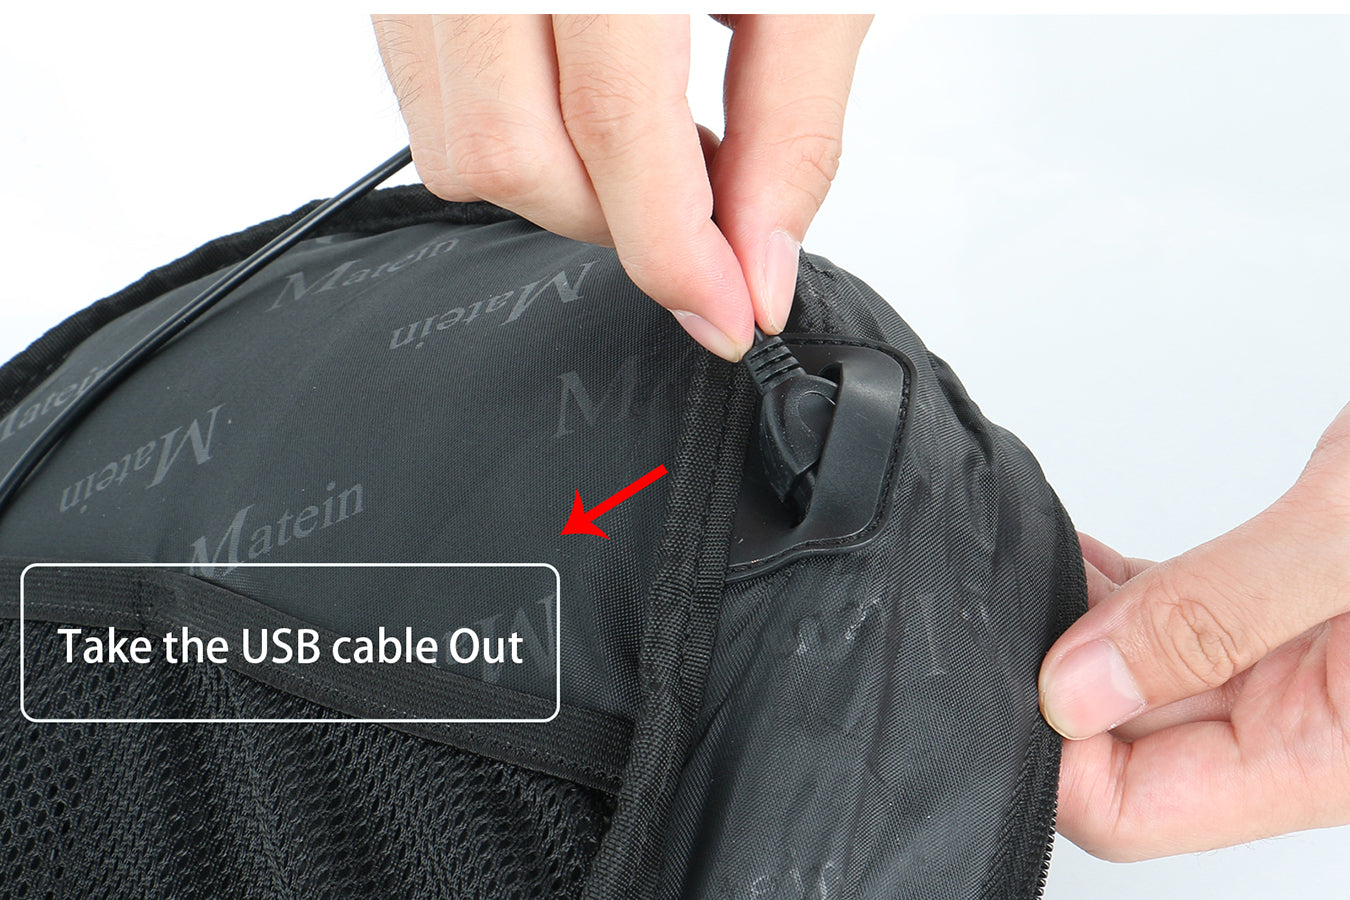 Instructions to remove usb cable of Matein Backpack